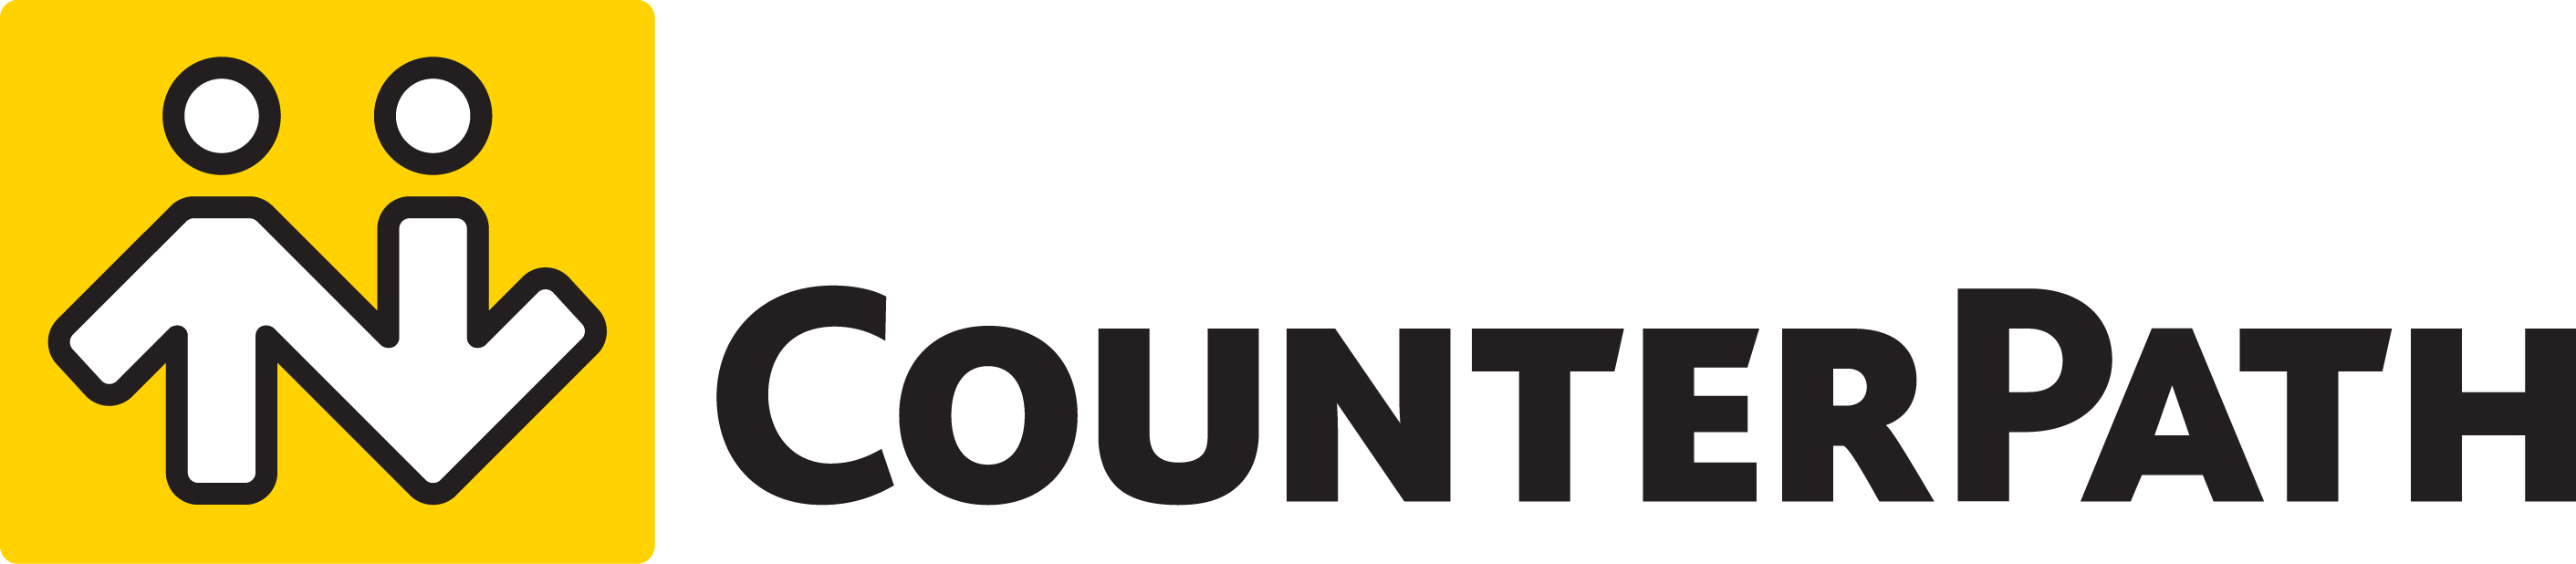 logo-counterpath-primary-lrg.png